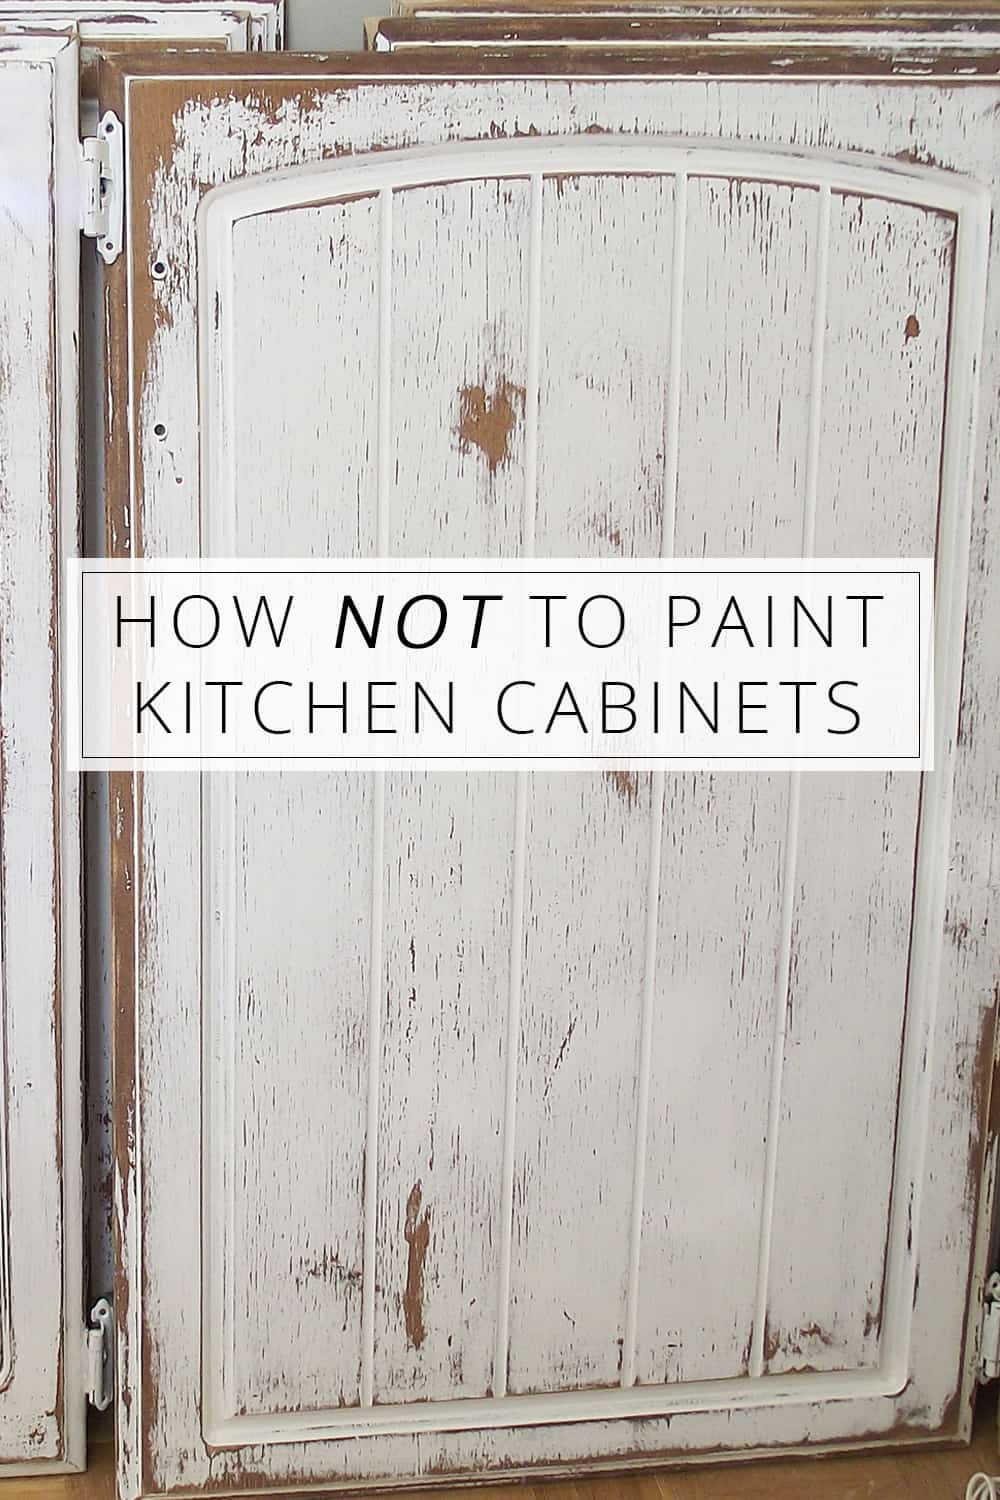 How-not-to-paint-kitchen-cabinets.jpg